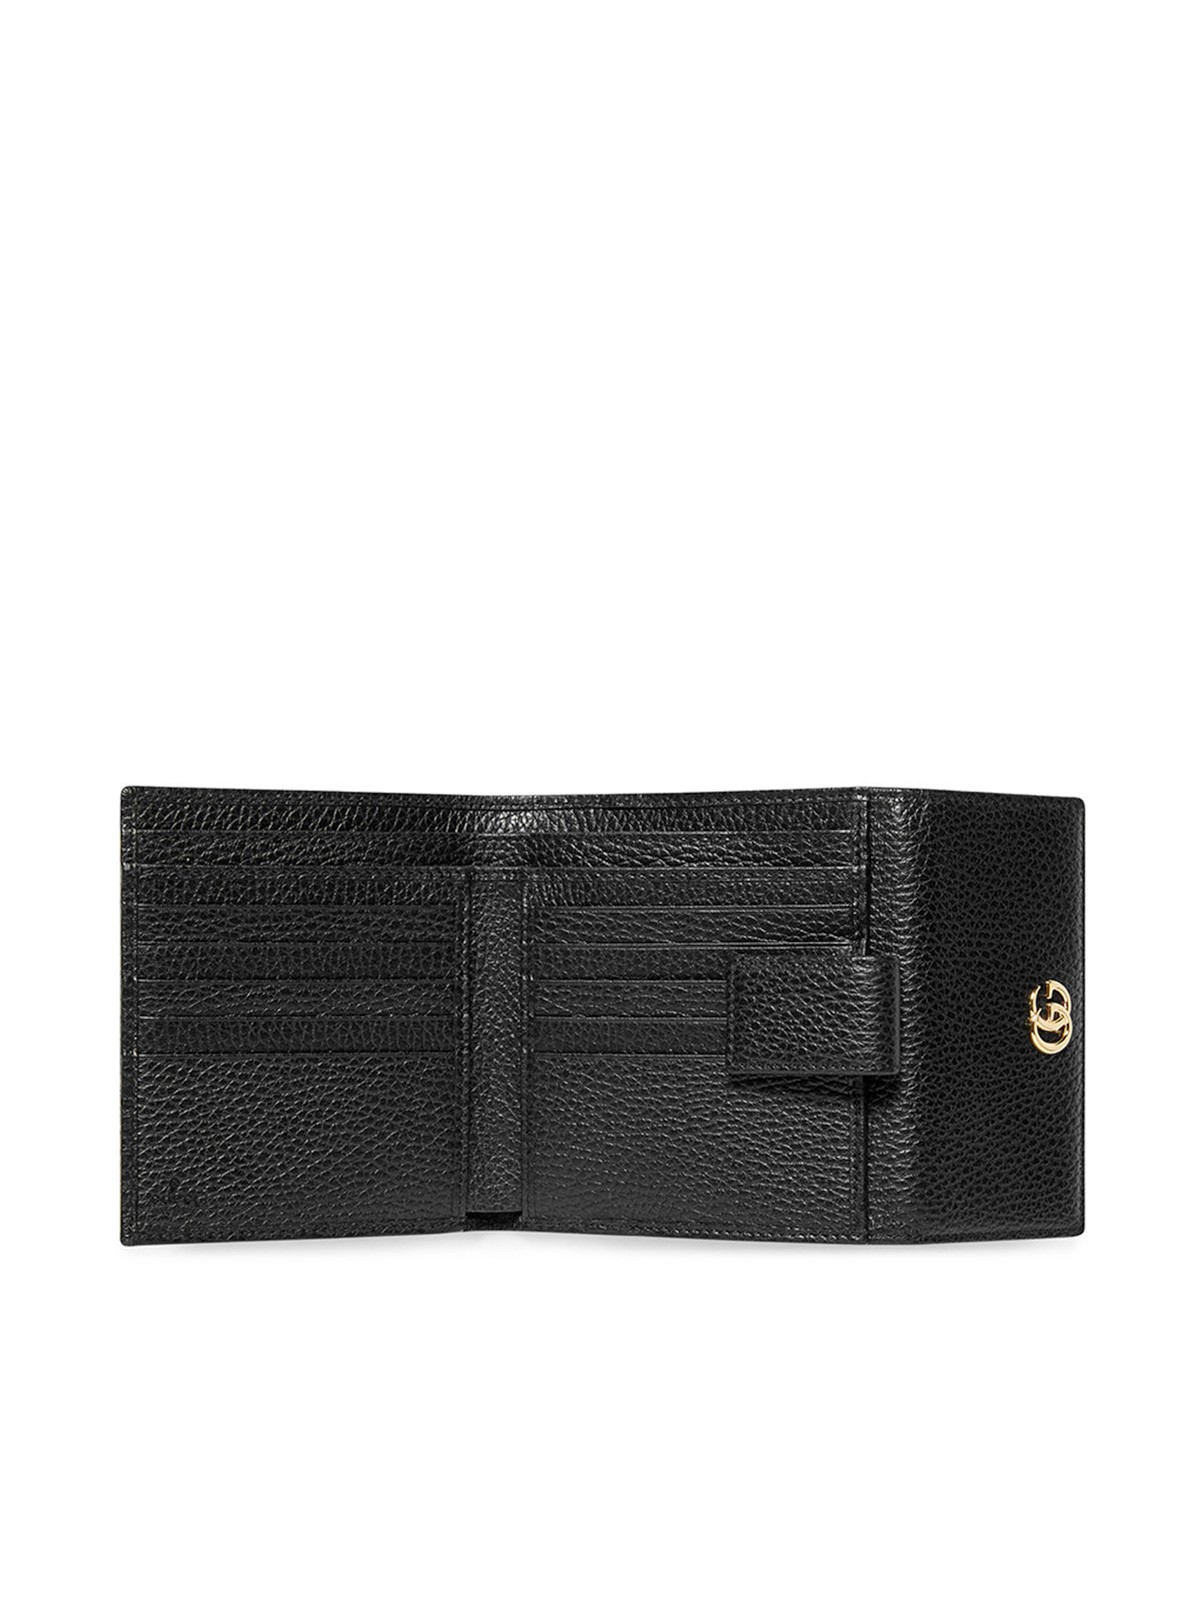 5fc6ea1c4811 gucci FRENCH FLAP WALLET available on montiboutique.com - 21658